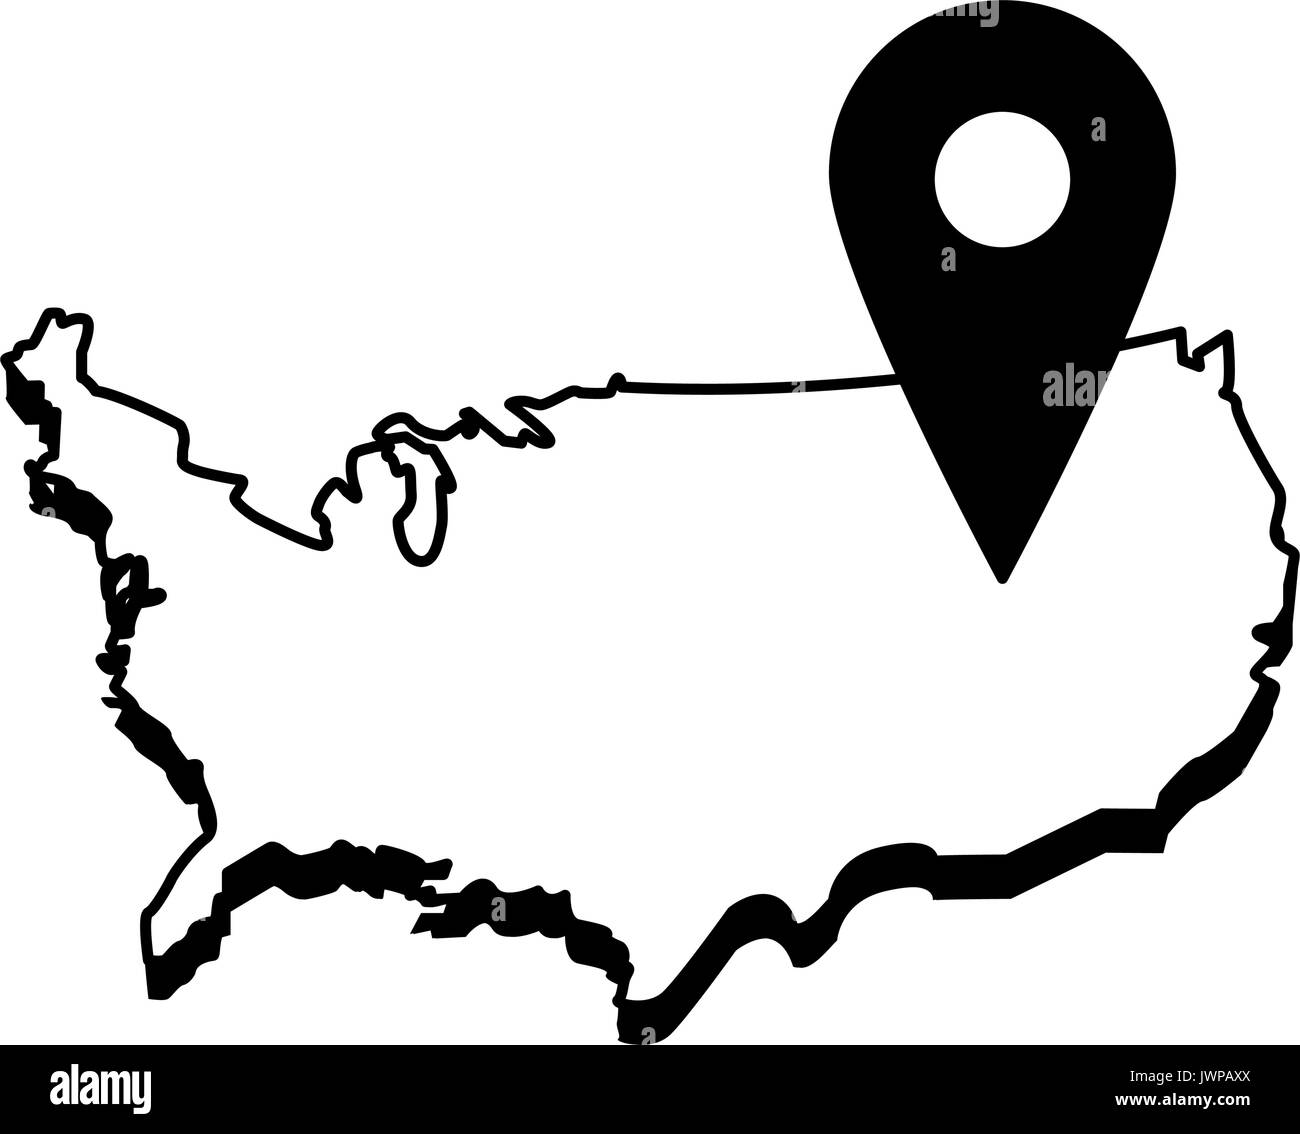 usa map outline with gps pin icon image Stock Vector Art ...